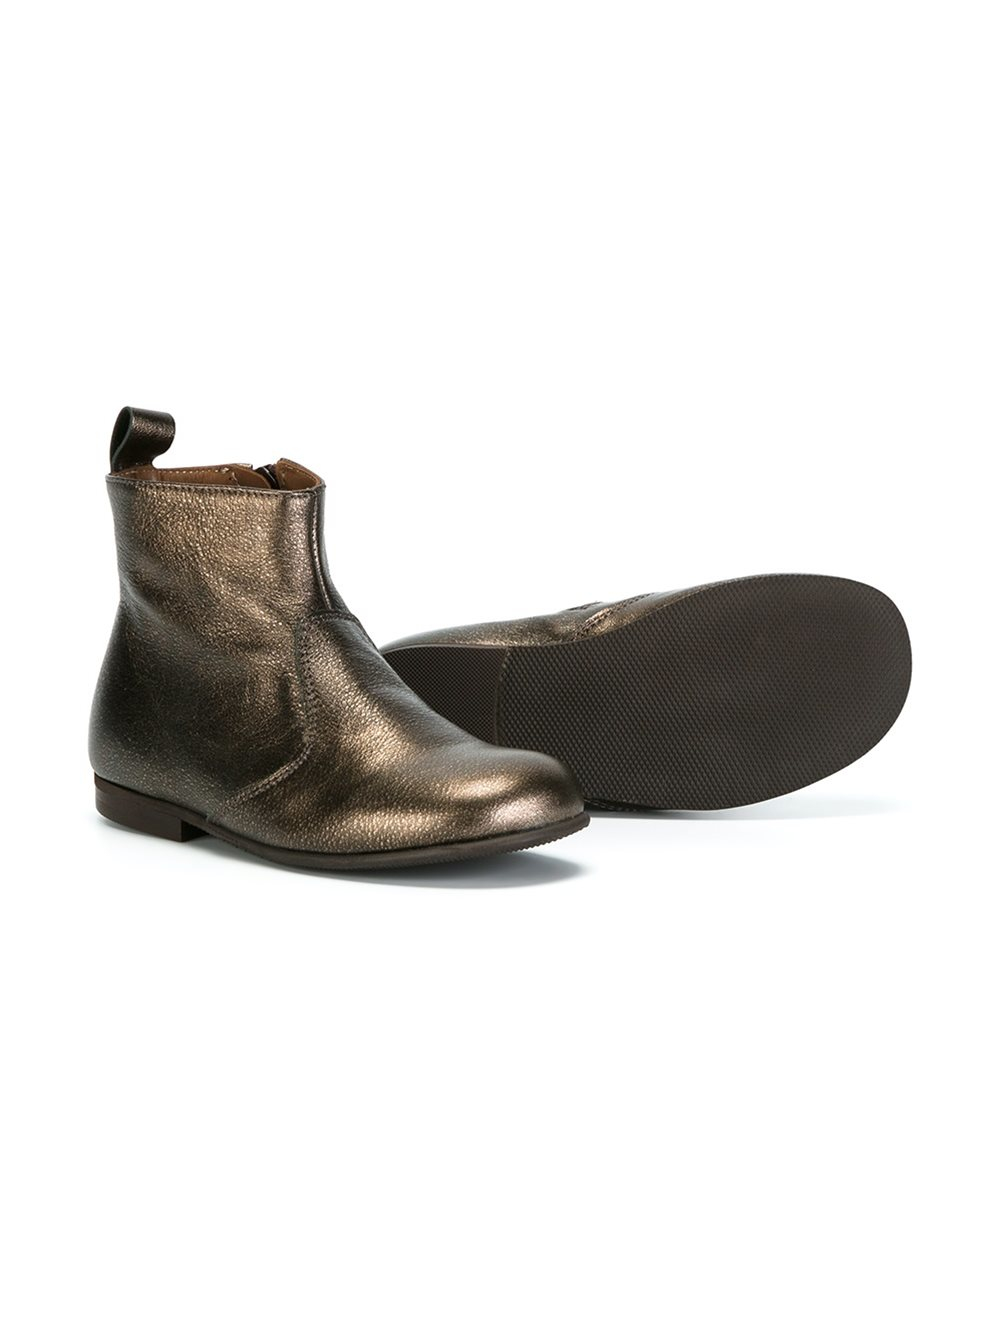 Pepe Jeans Leather Metallic Ankle Boots in Brown